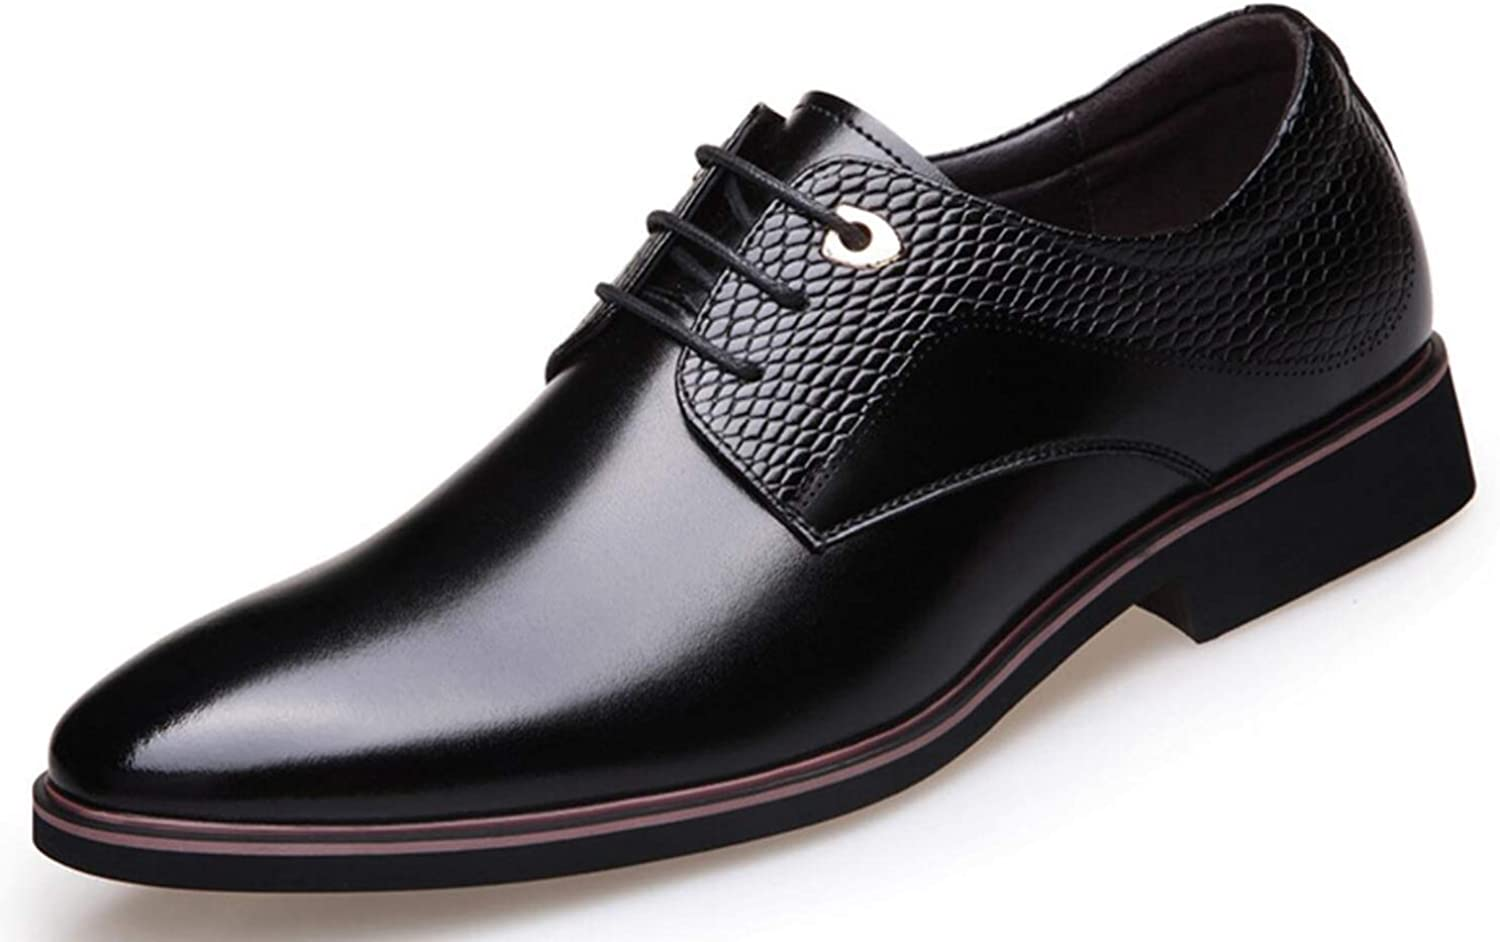 Shiney Men's shoes Business Dress Wedding Leather New England Dress Pointy Casual shoes